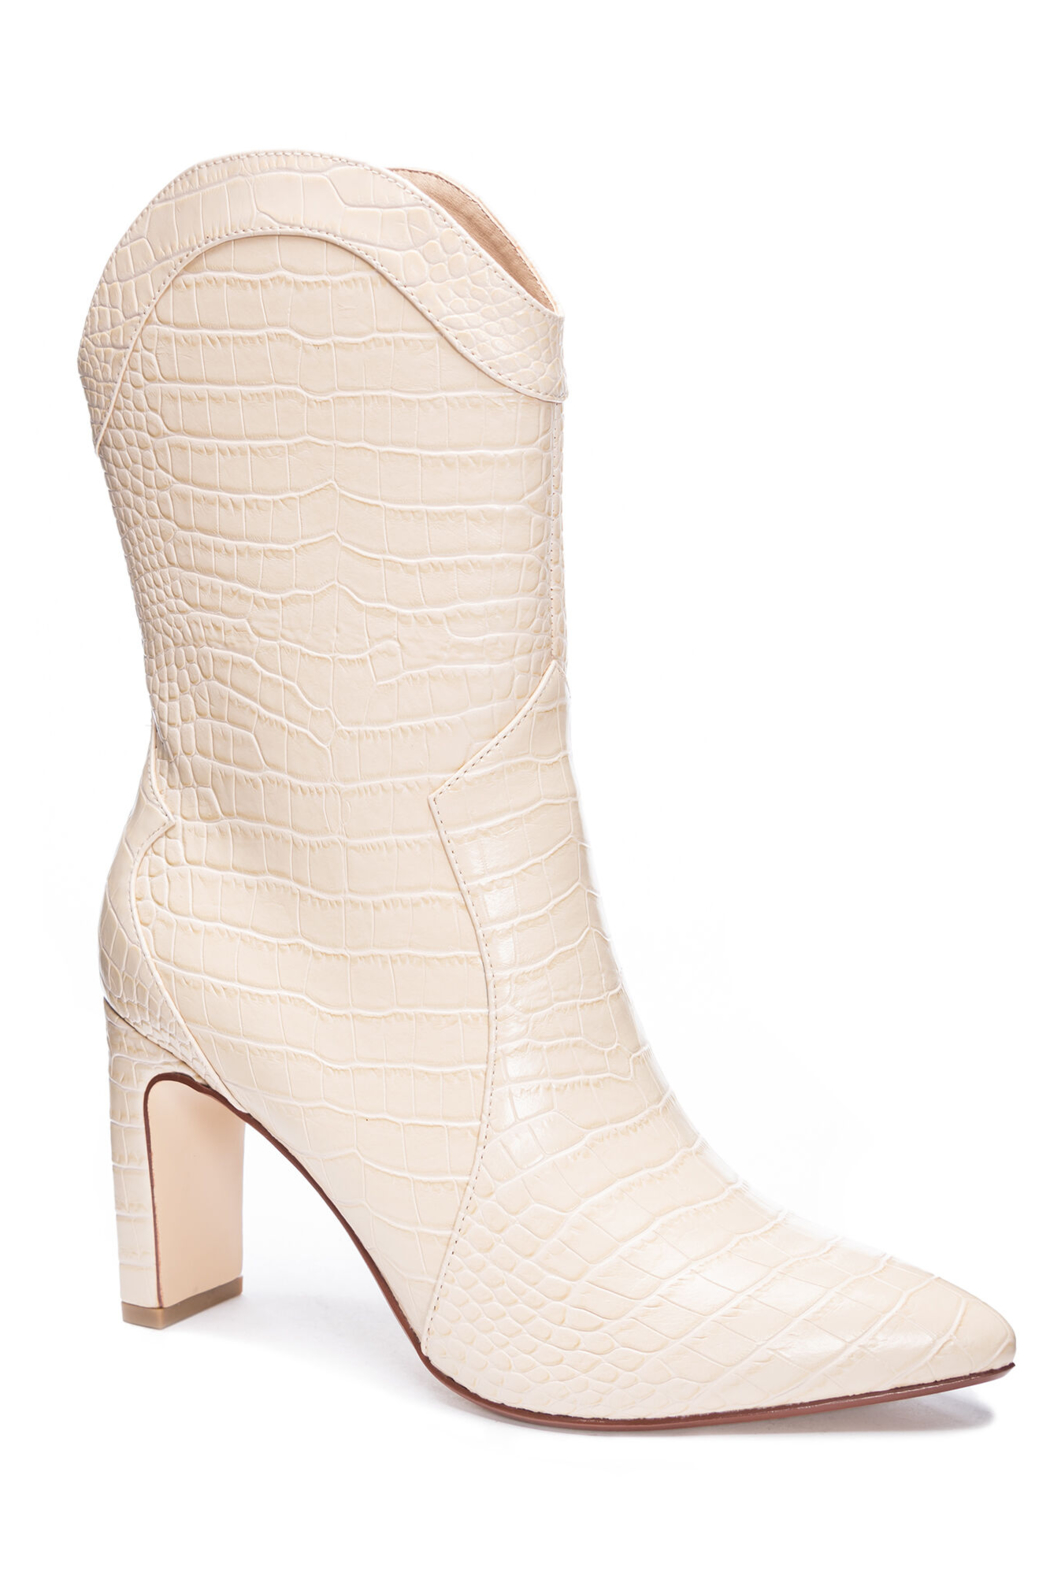 Chinese Laundry Everley Mid Calf Boot - Front Full Image